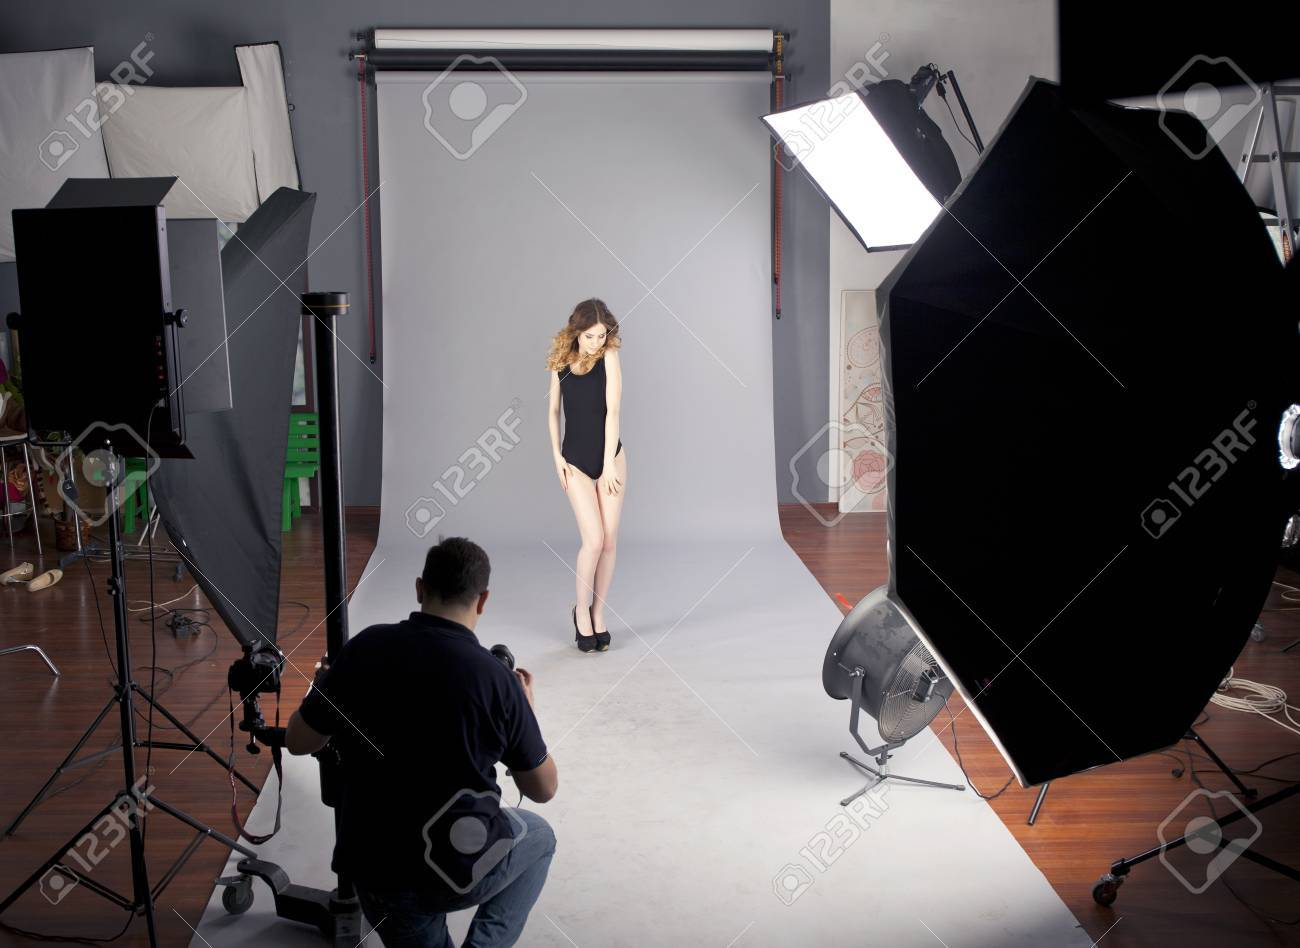 Working Conditions In The Studio The Photographer Photographs Stock Photo Picture And Royalty Free Image Image 38701356